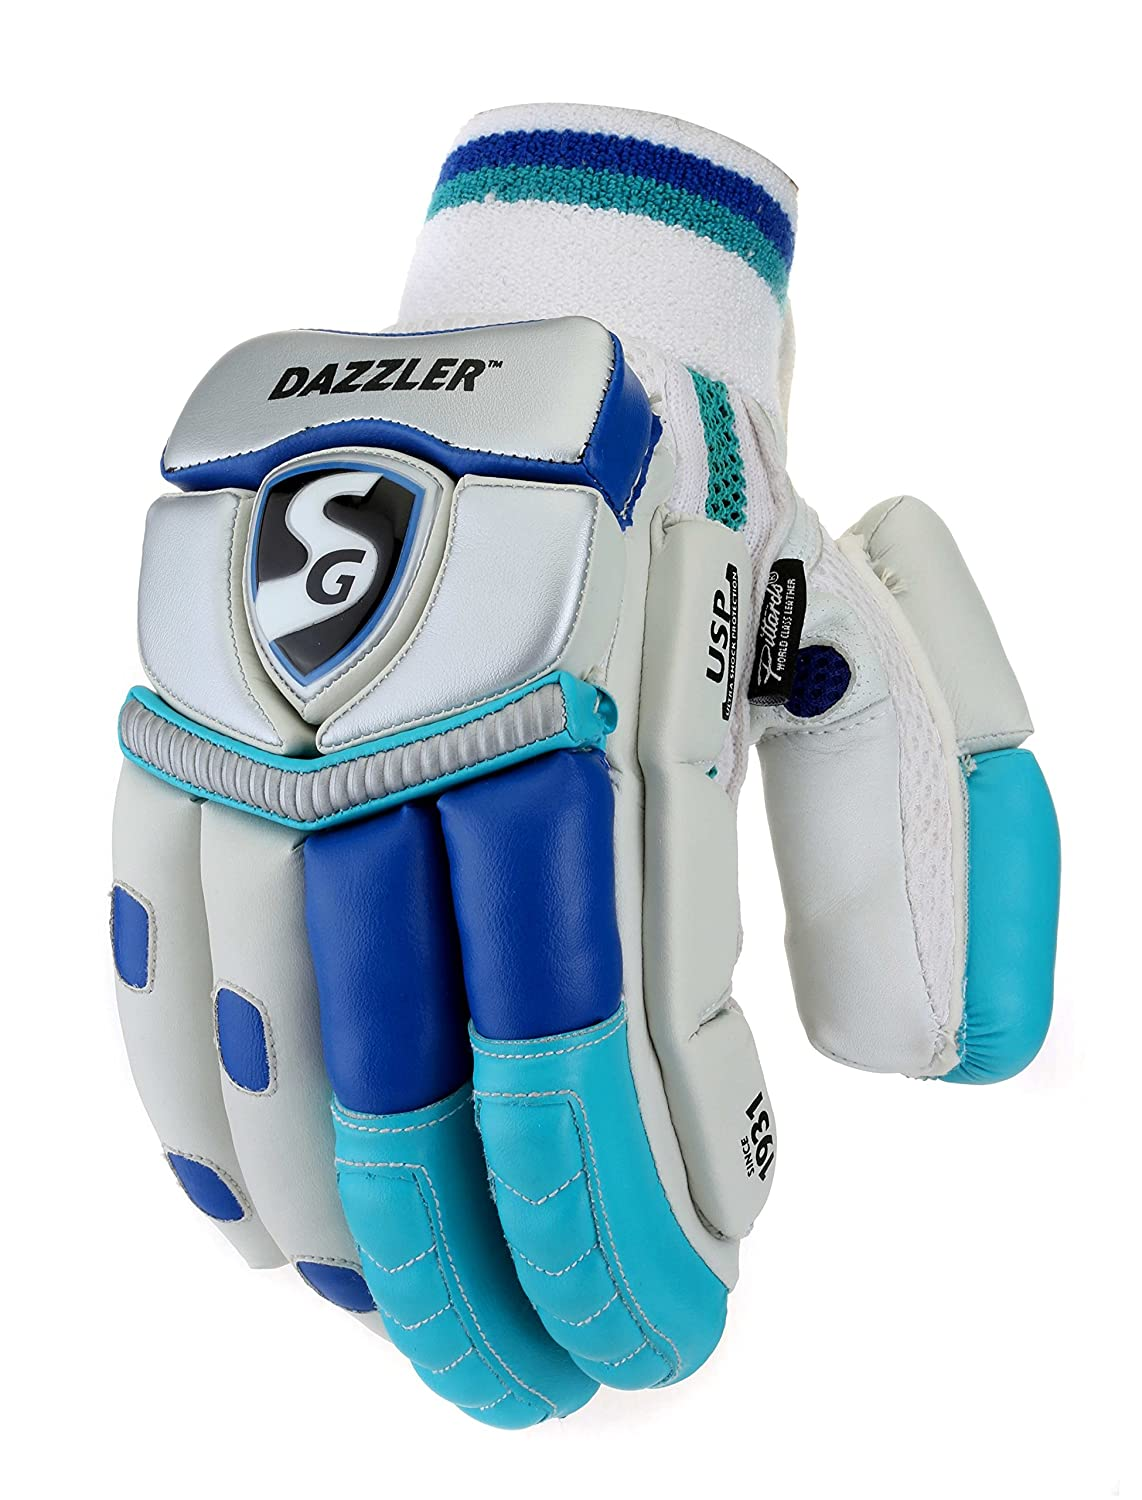 teal batting gloves